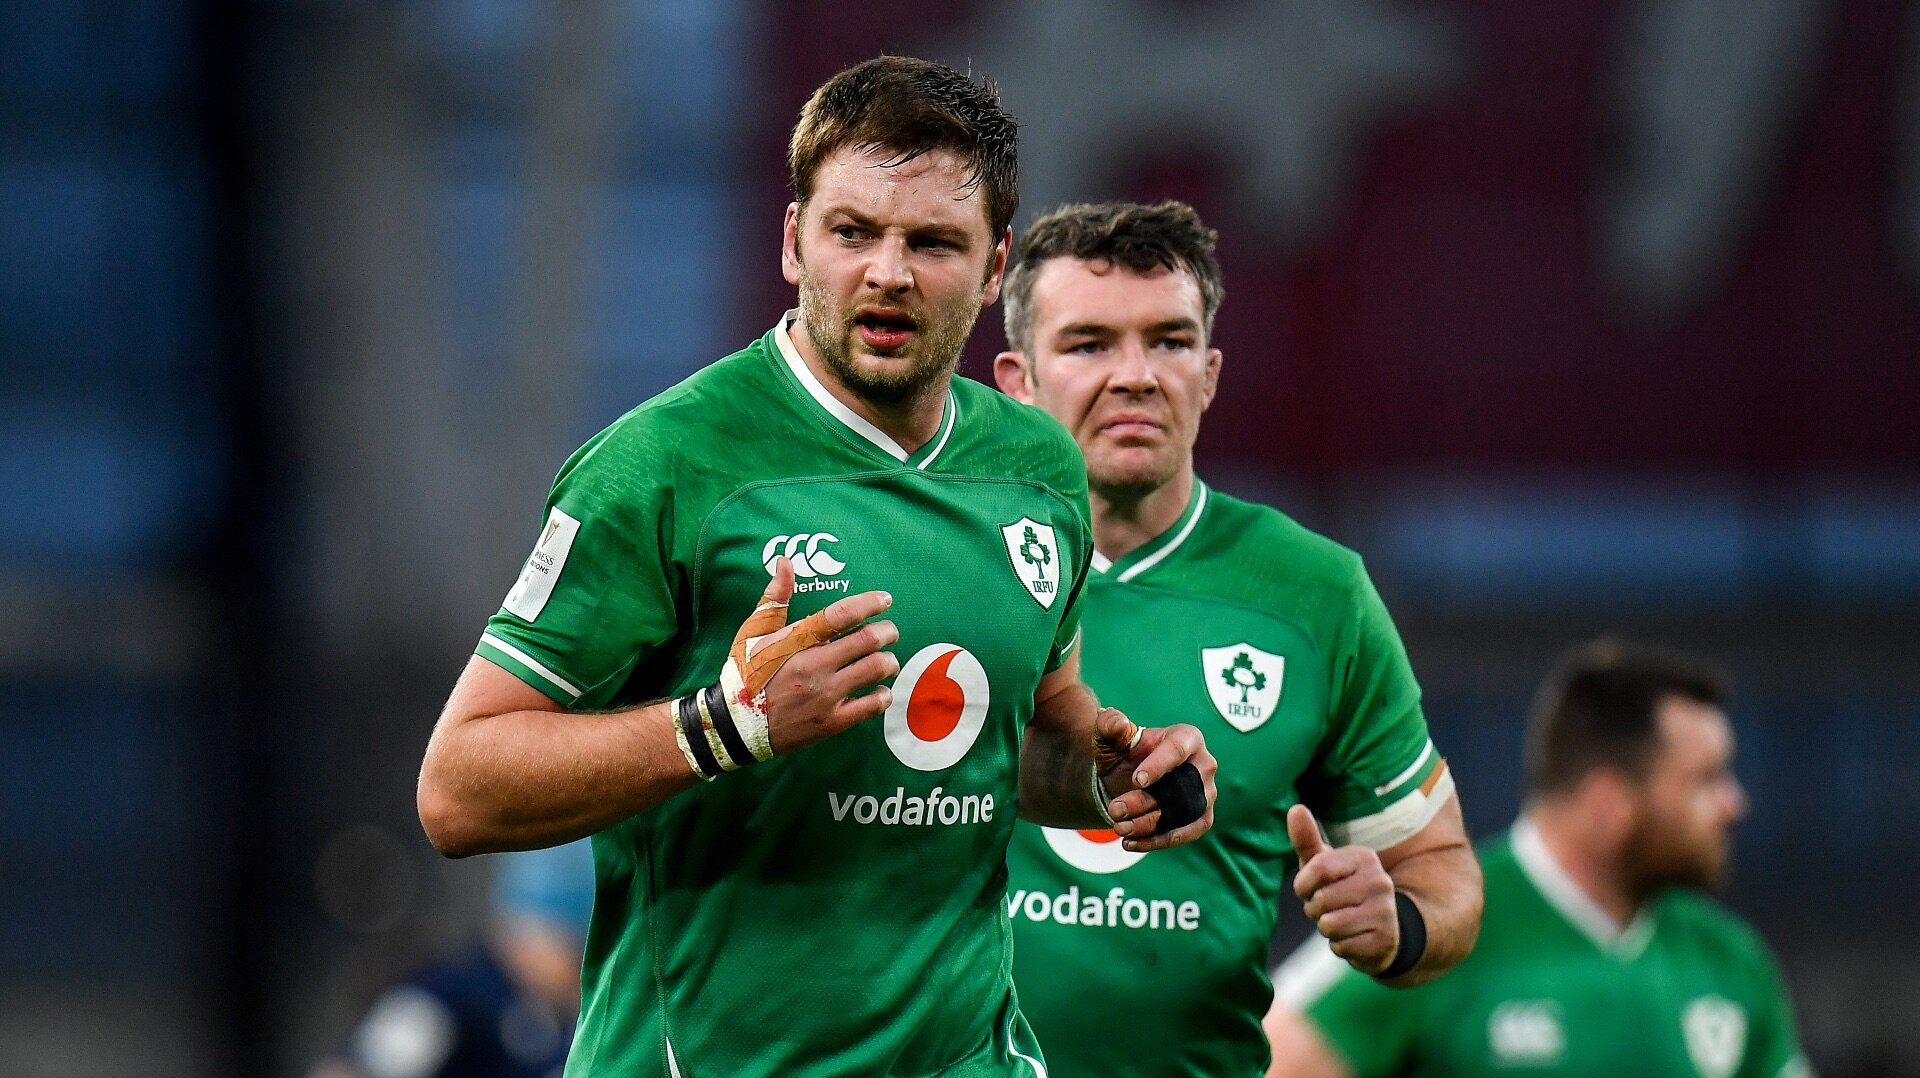 Iain Henderson is an injury doubt for Ireland's Six Nations campaign restart